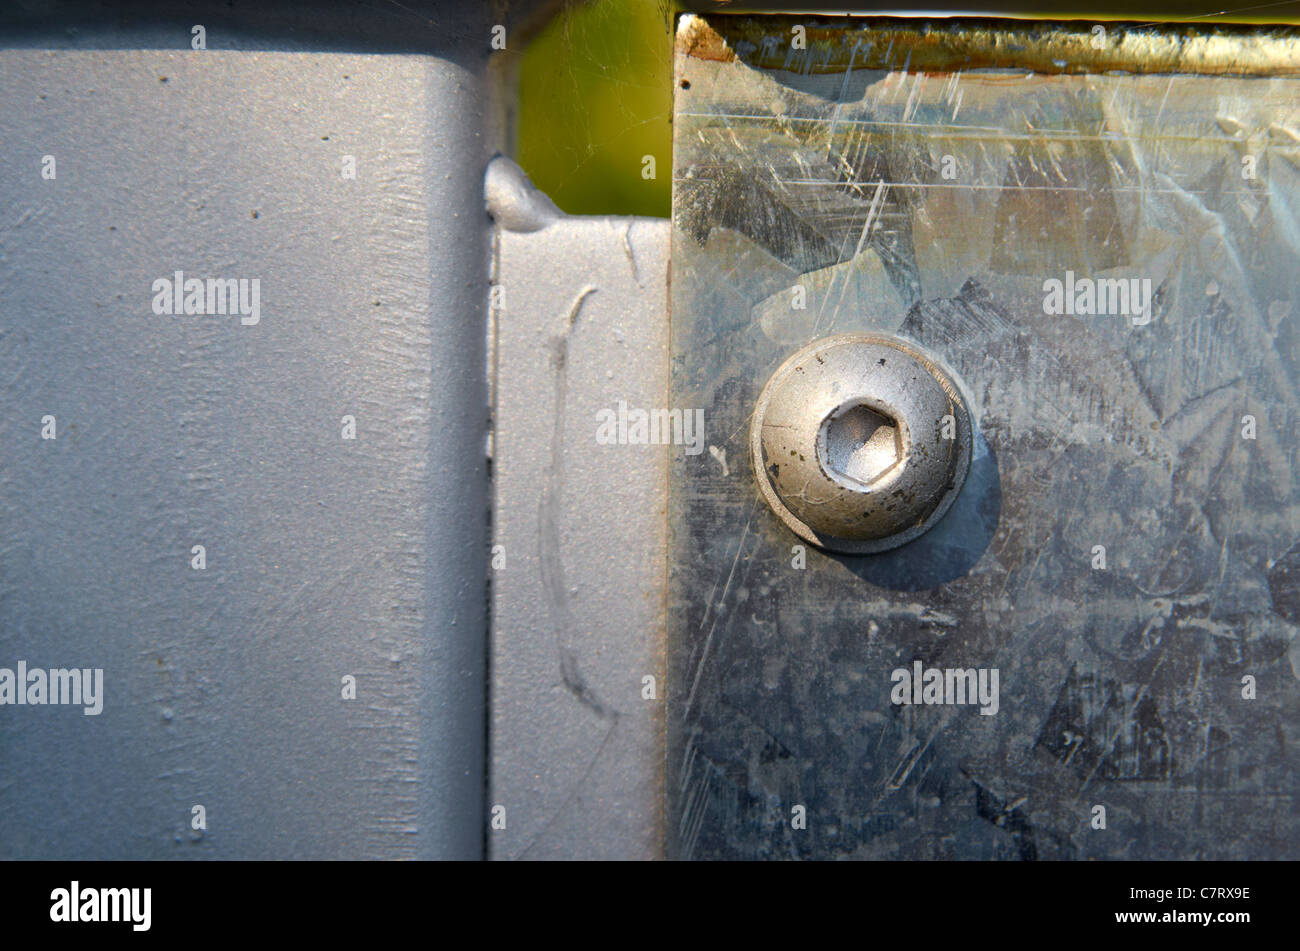 Allen bolt used to secure safety panel to the framework of a footbridge over a railway line. - Stock Image